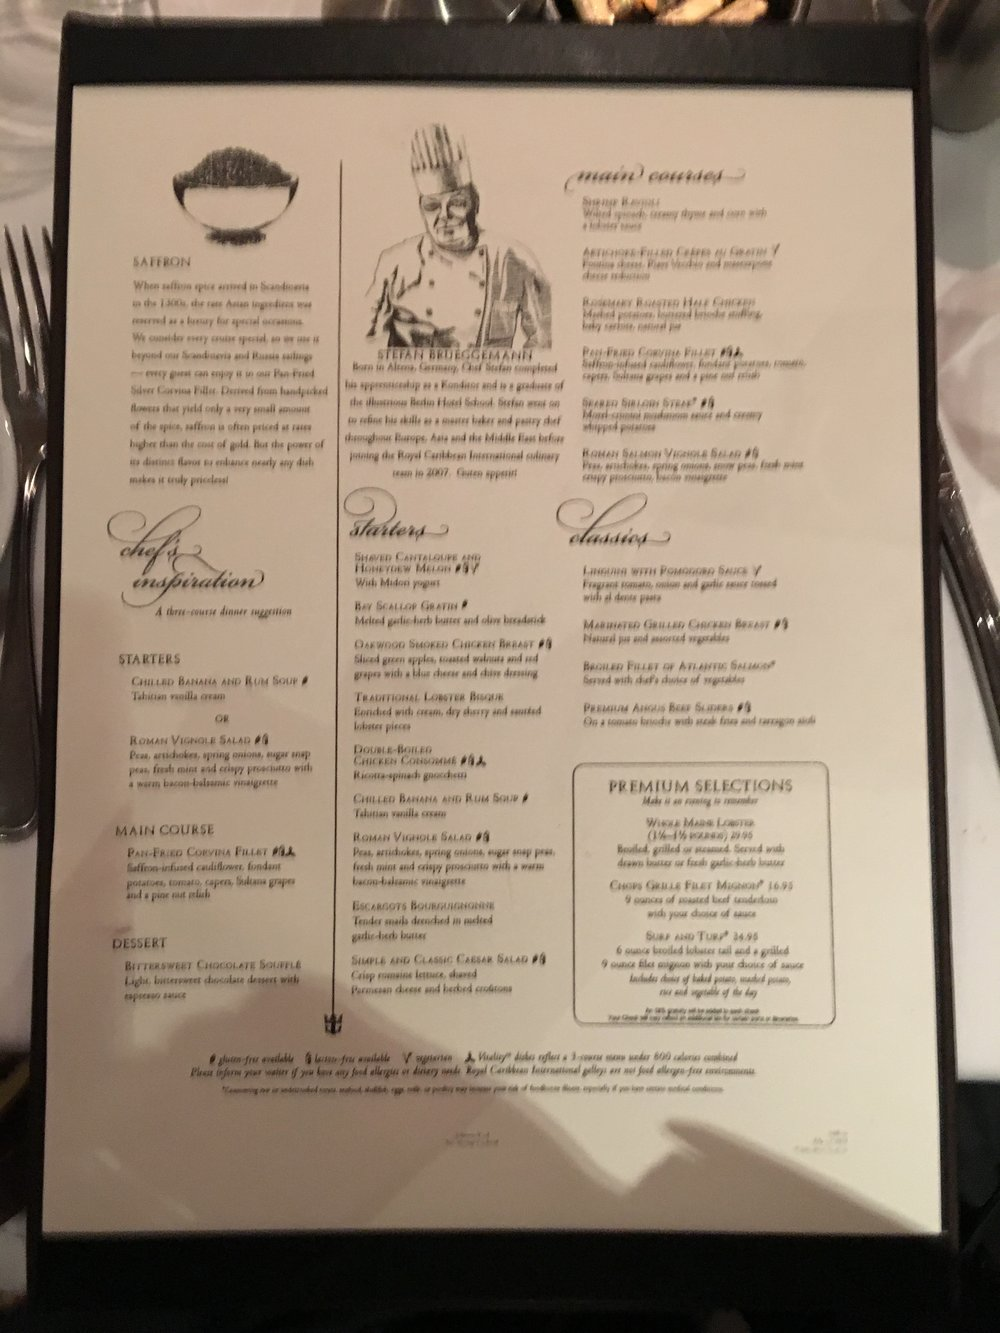 Dinner Menu Day 2- sorry for the poor quality Iphone photo!